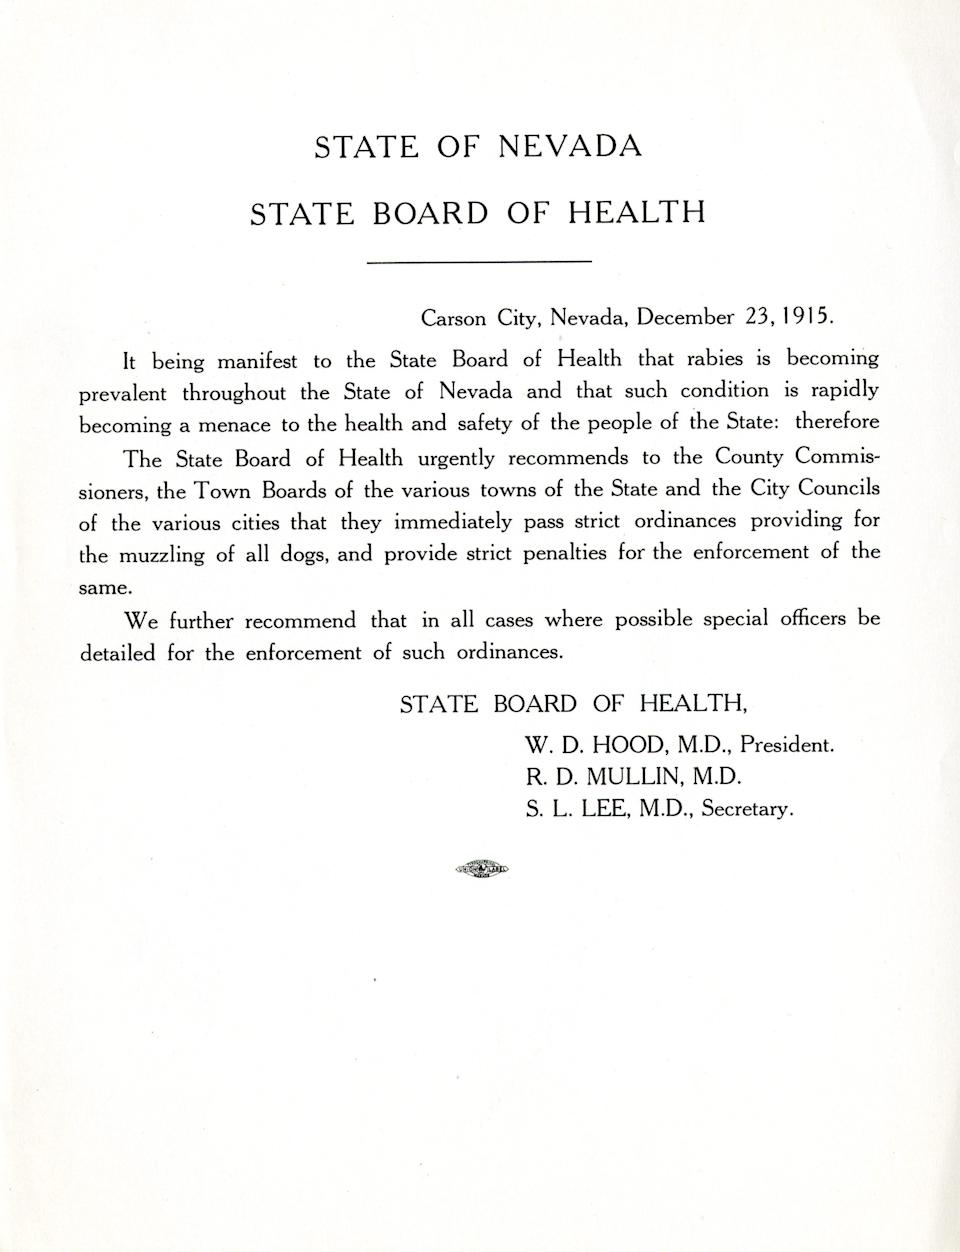 A 1915 statement from the Nevada Board of Health regarding an outbreak of rabies.